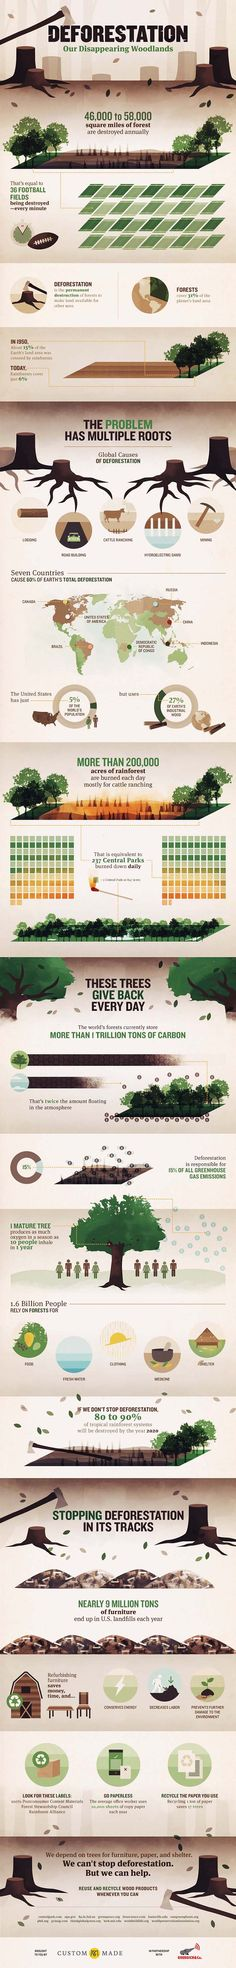 You've Heard About This Problem With Our Trees, But Do You Really Know How Big It Is? | #lifeadvancer | @lifeadvancer